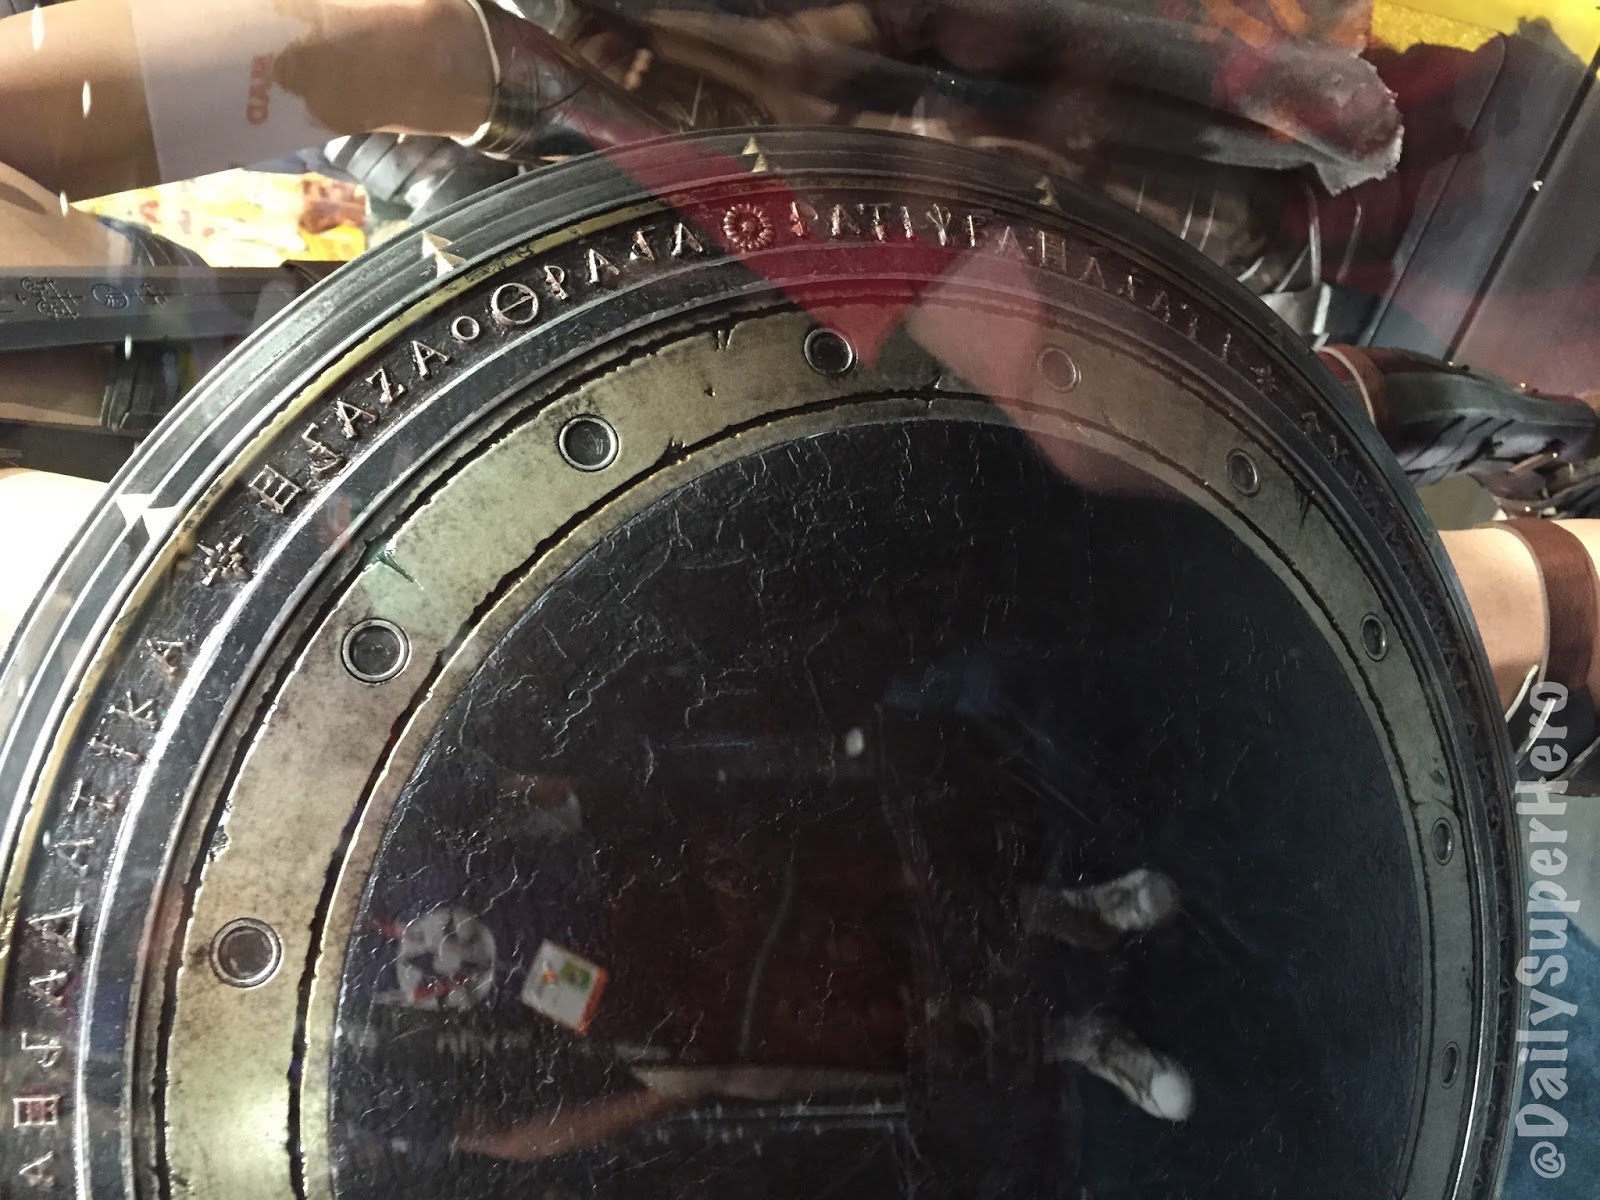 Figure 2: WW's shield as displayed at Comic-Con in San Diego in August 2015. Photo credit: thedailysuperhero.com.